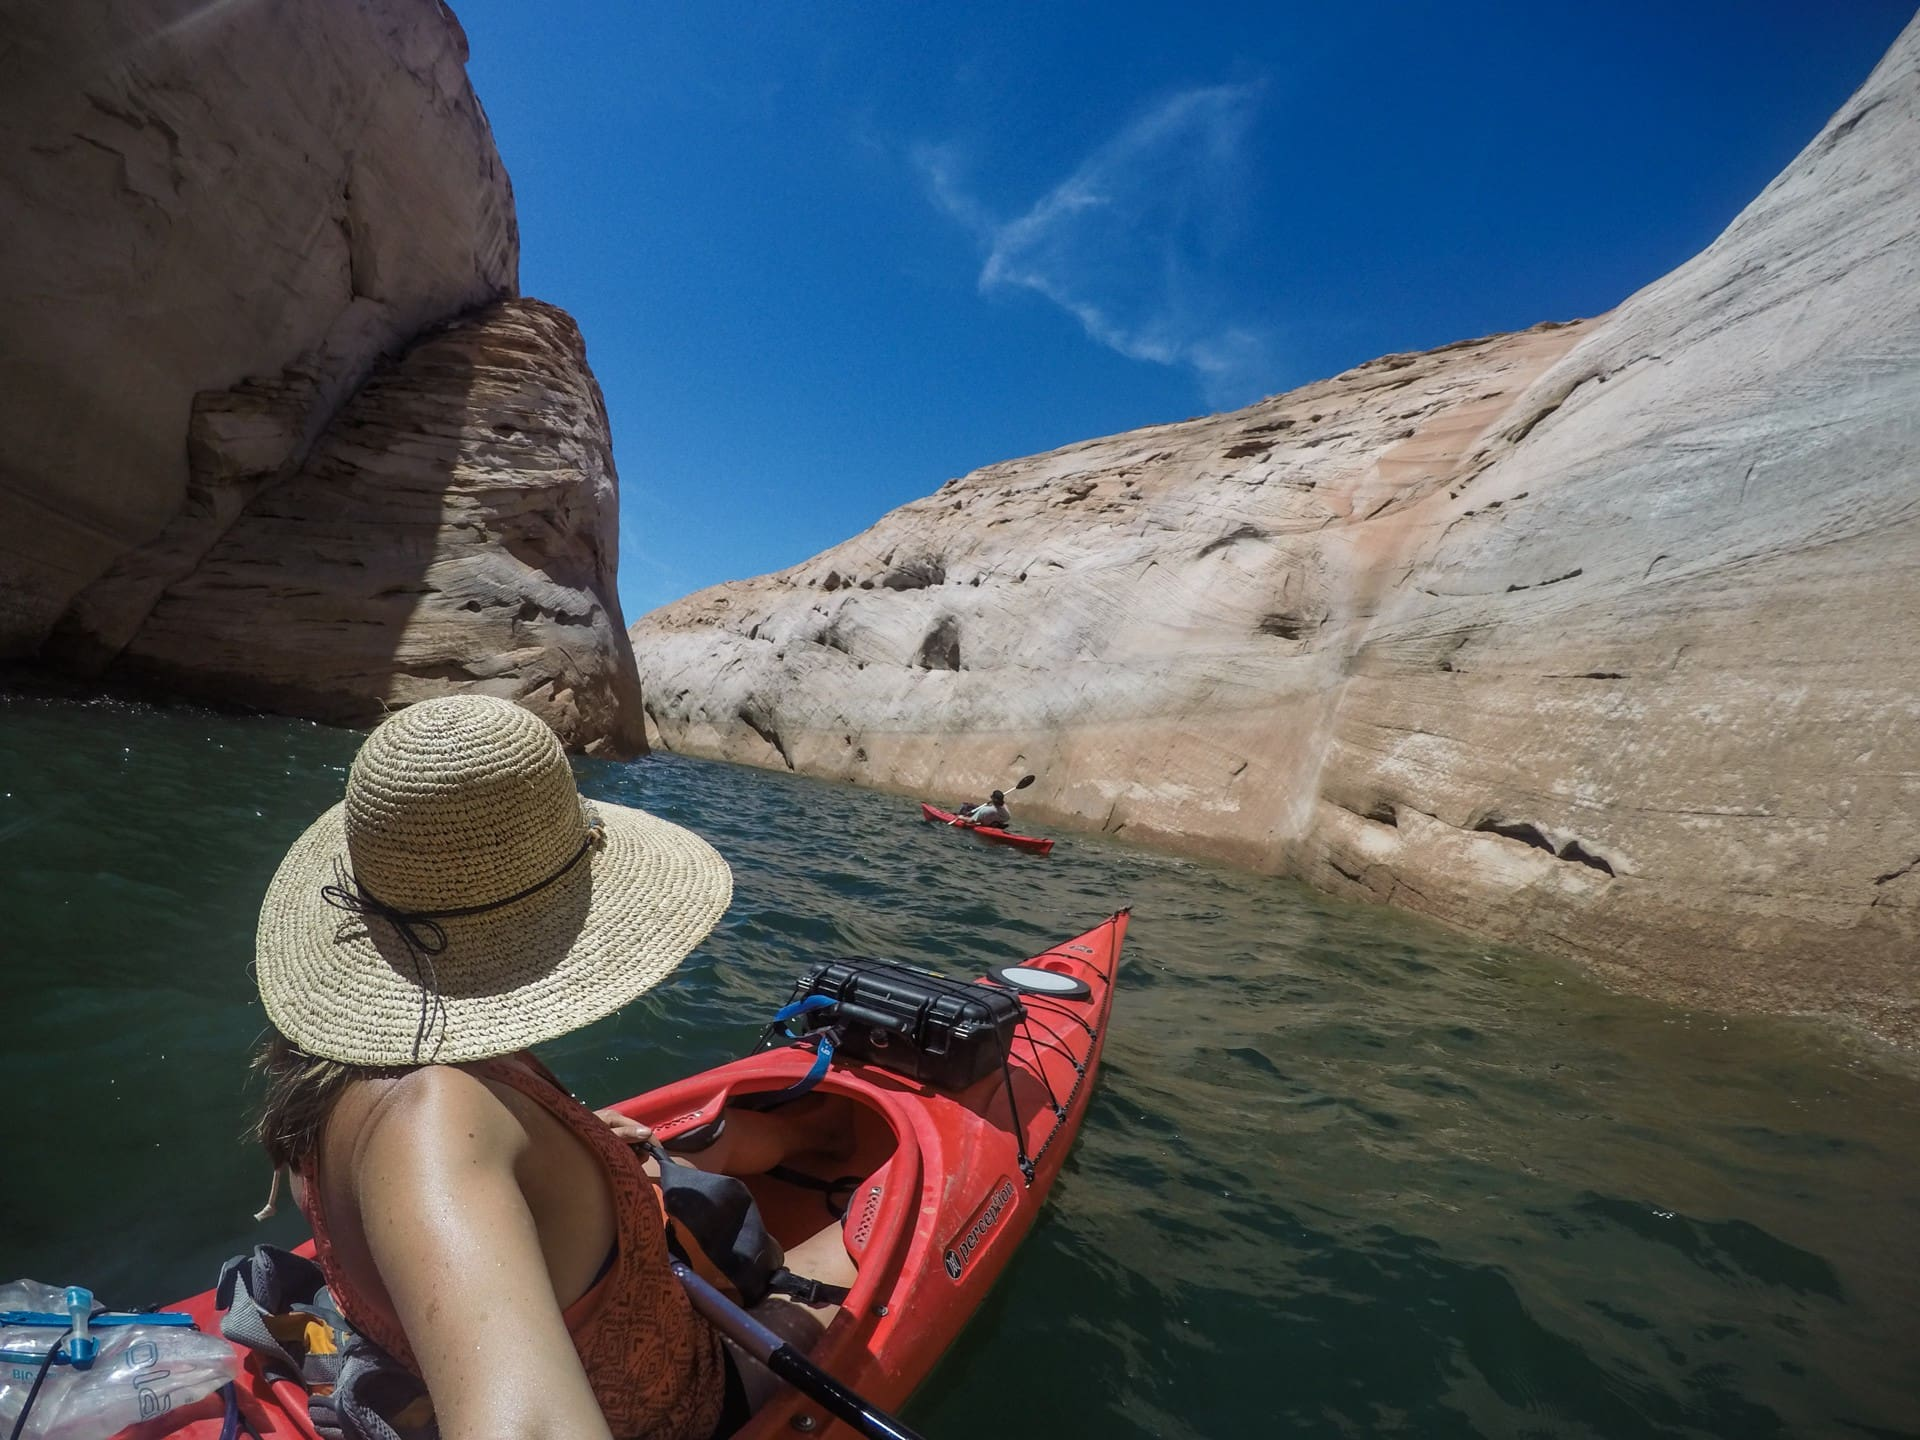 How to sit in a kayak // Build confidence with these beginner kayaking tips. Learn about different types of kayaks, what to wear, how to paddle & trip planning considerations.